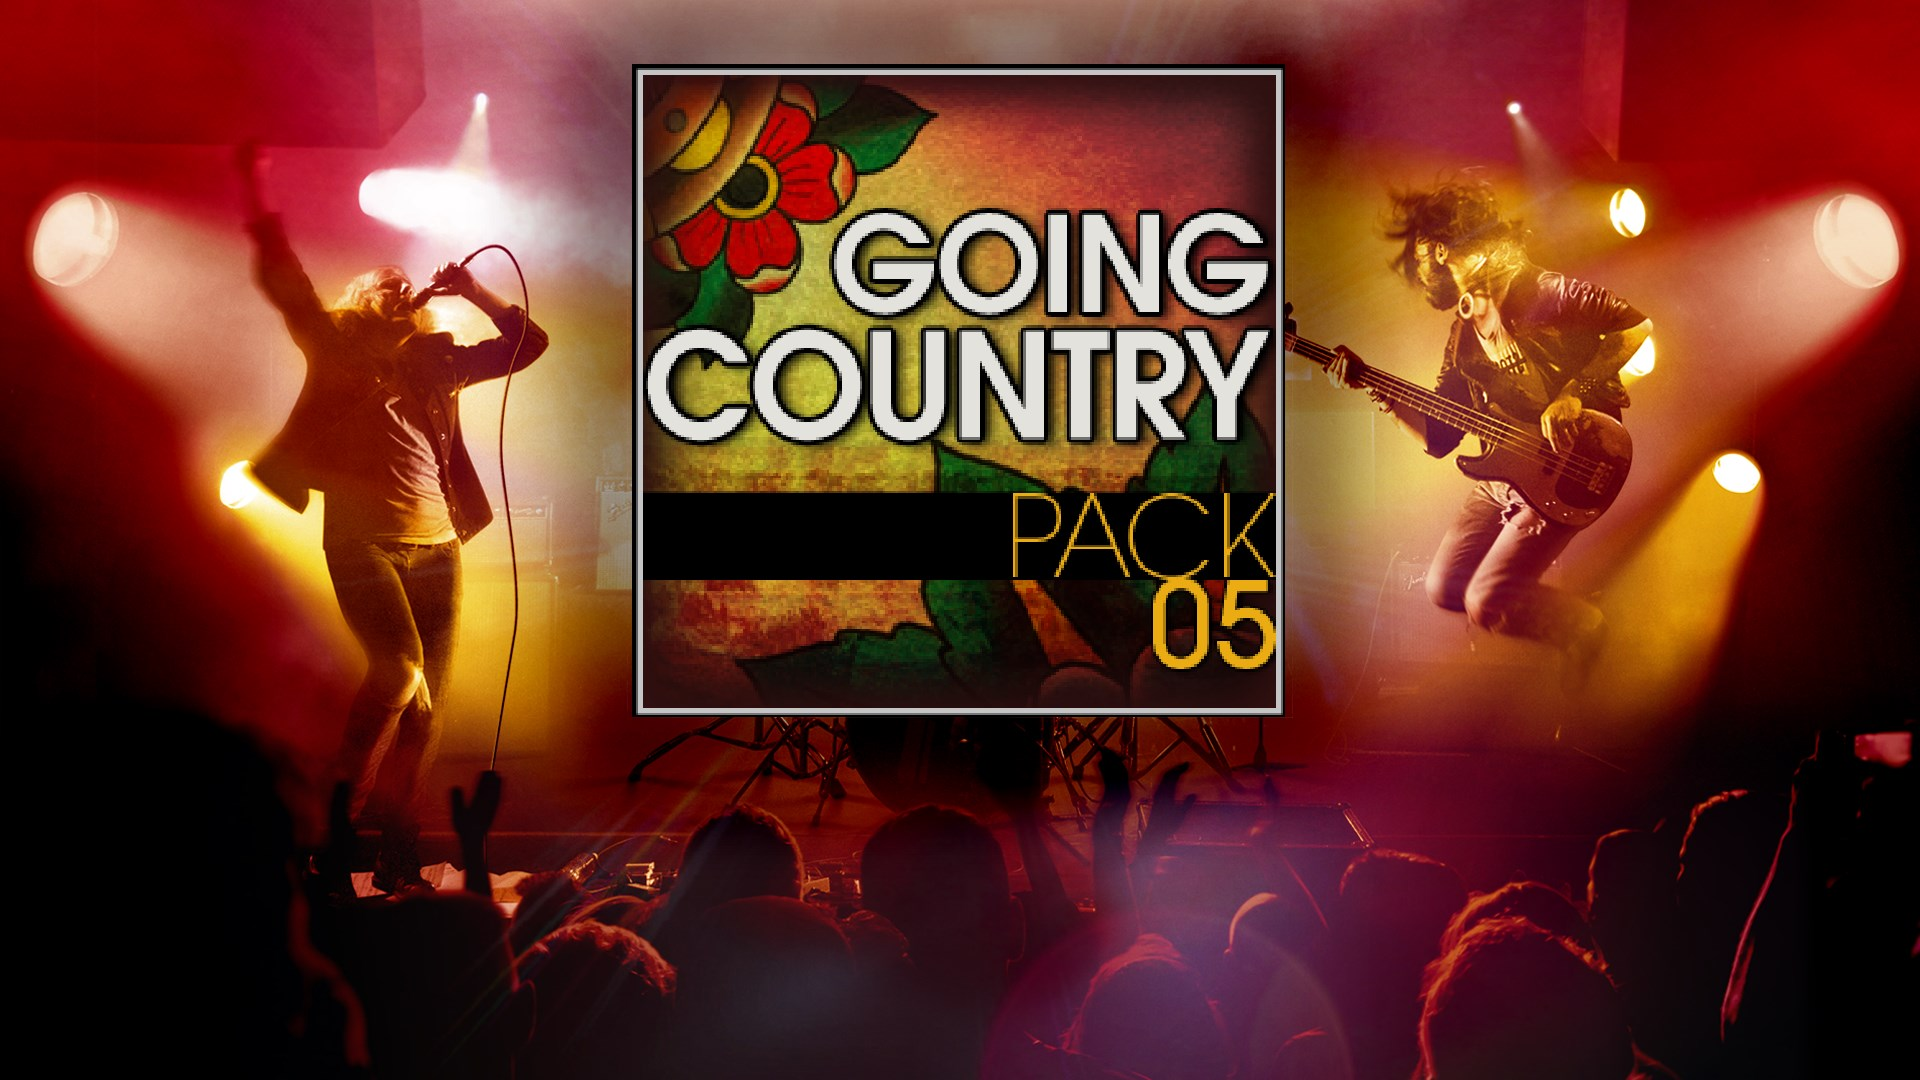 Going Country Pack 05